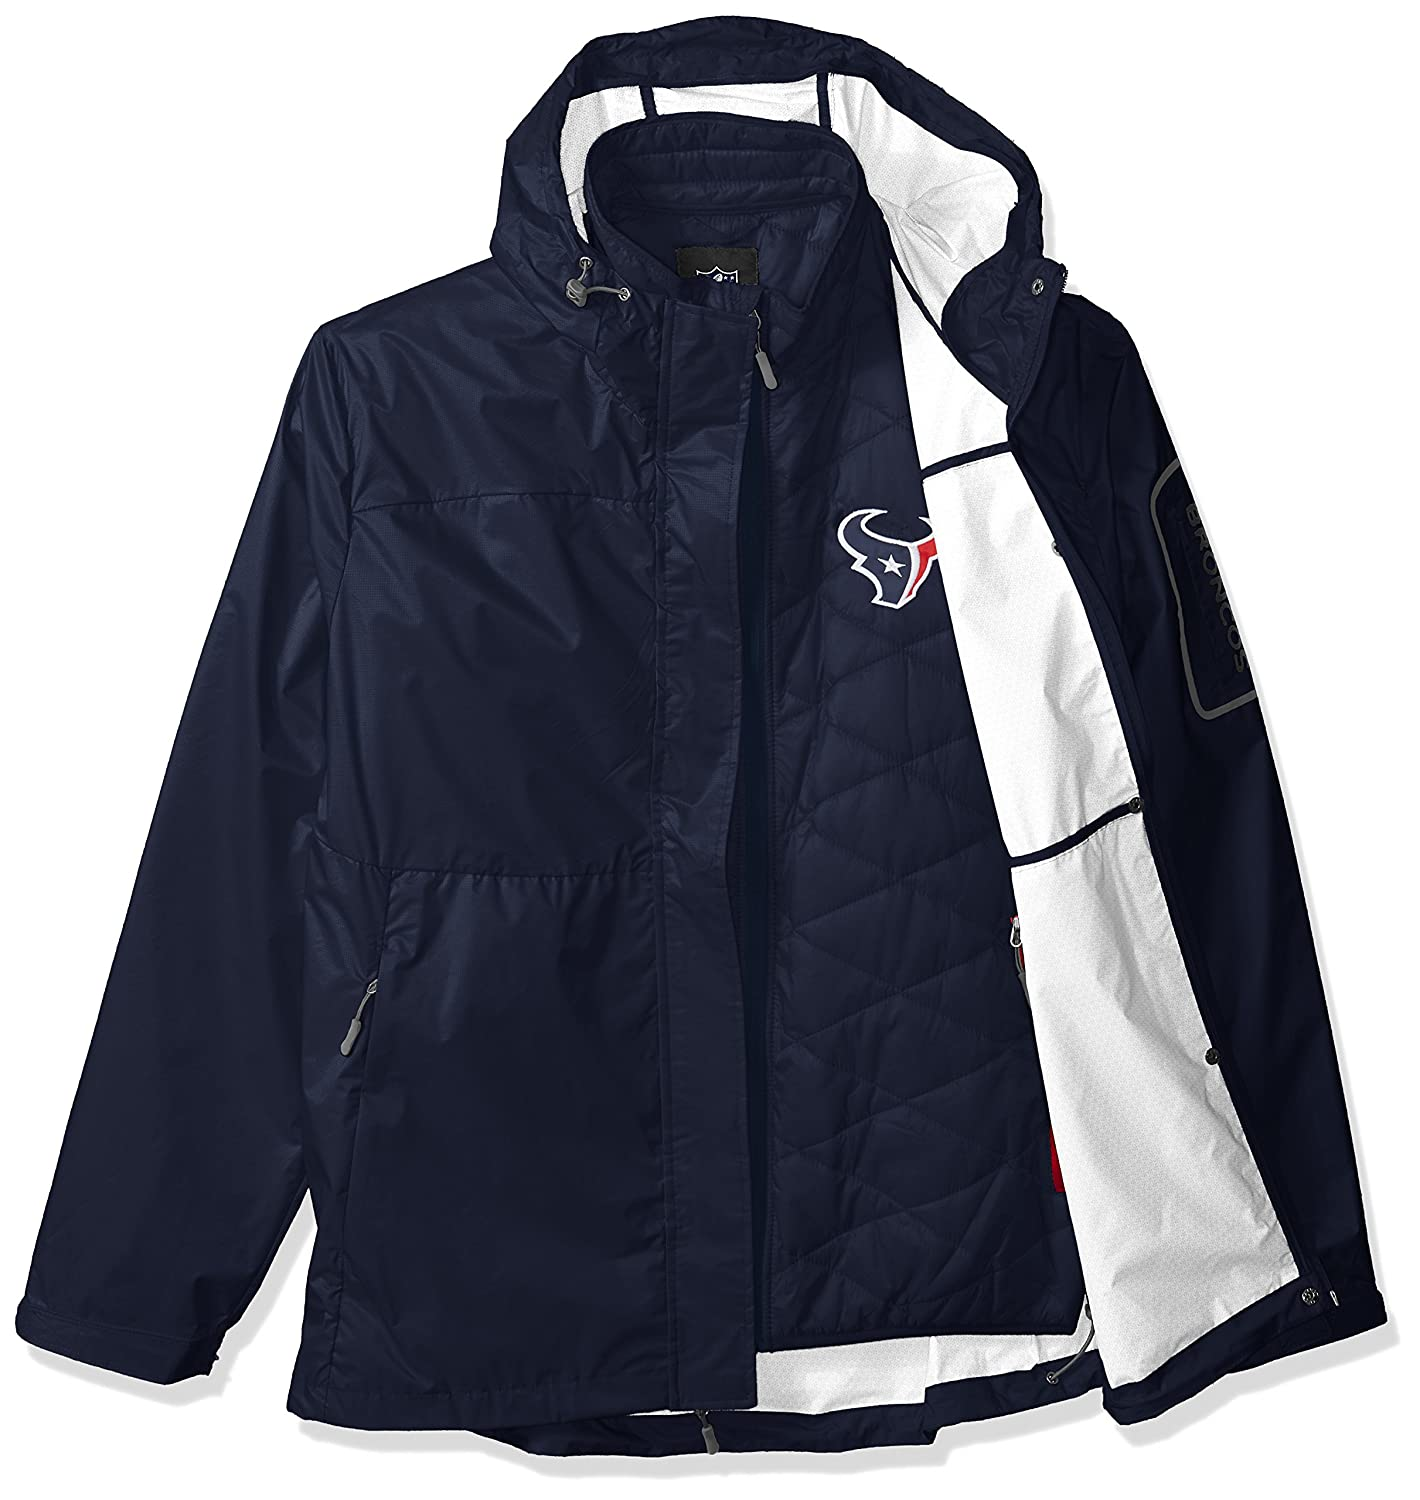 G-III Mens Acclimation 3-in-1 Systems Jacket Navy Large